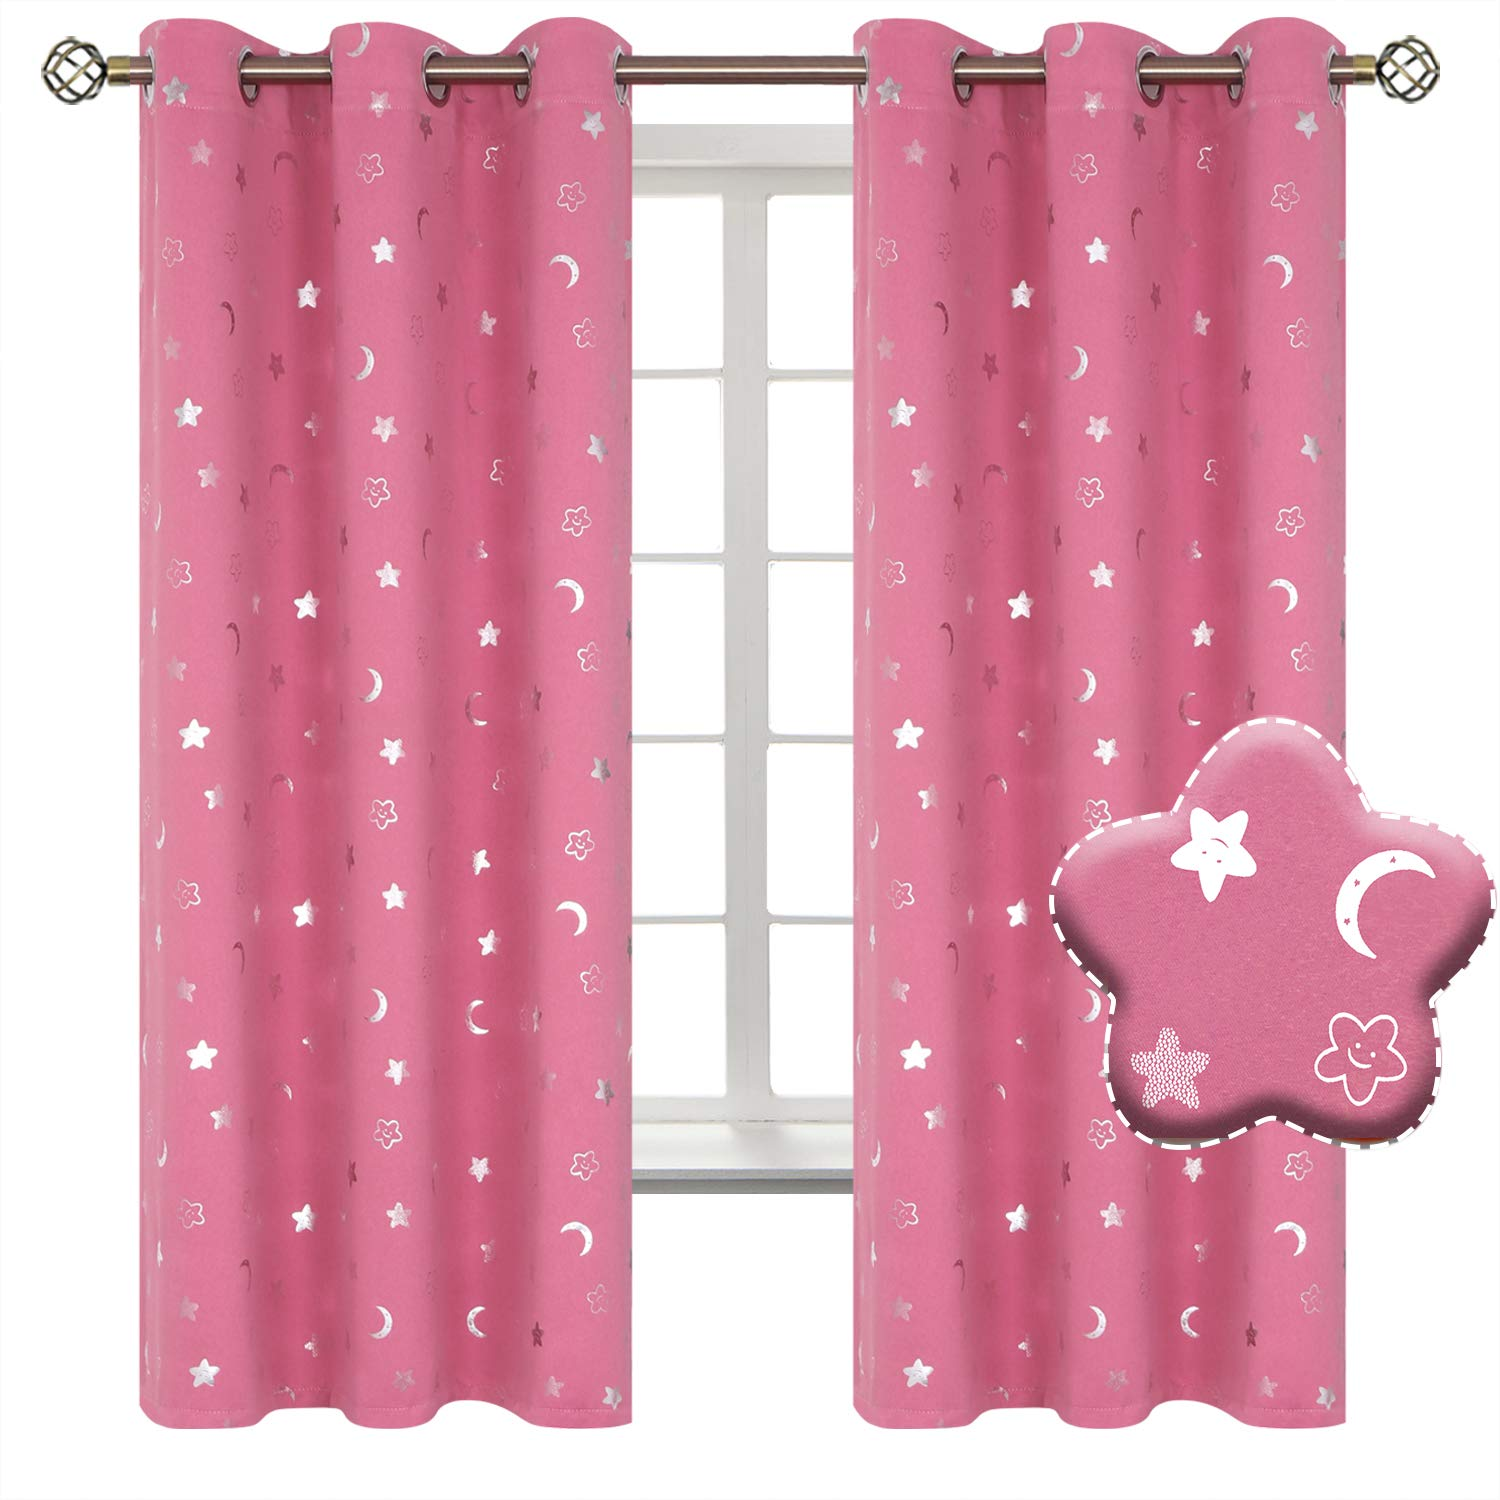 BGment Moon and Stars Blackout Curtains for Girls Bedroom, Grommet Thermal Insulated Room Darkening Printed Kids Curtains, 2 Panels of 42 x 63 Inch, Pink by BGment